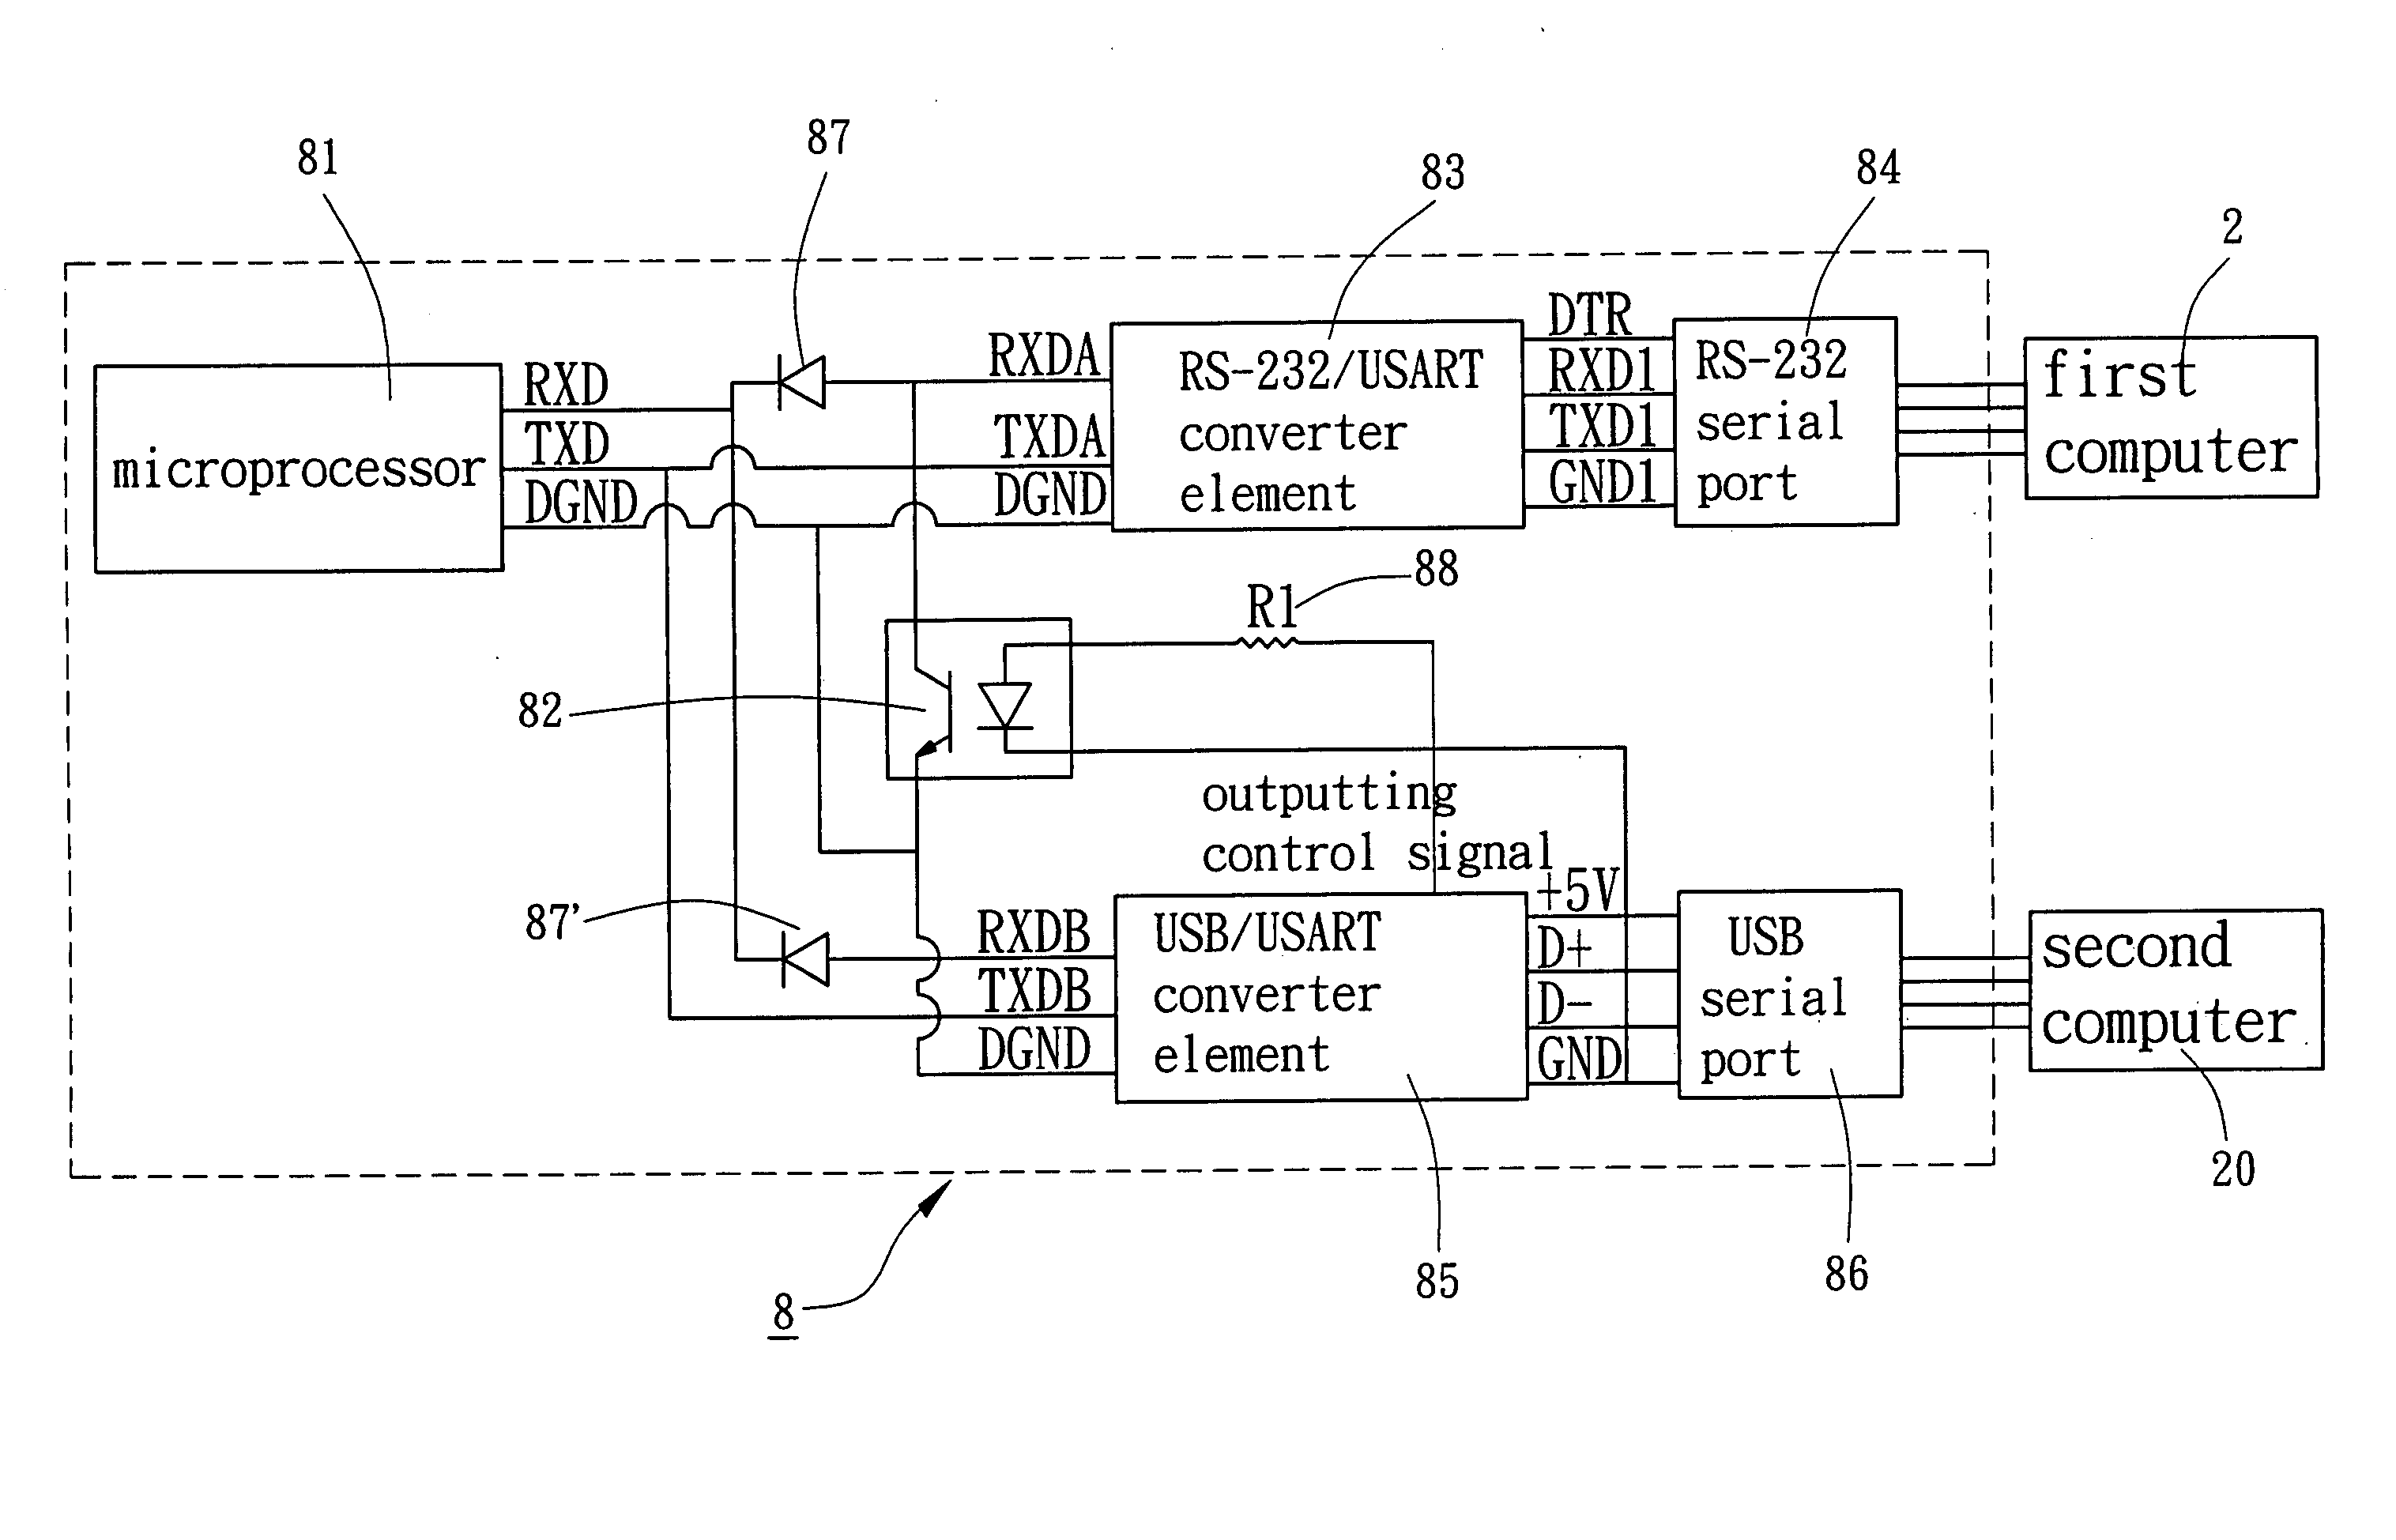 Patent Us20050154799 Switching Device For Rs 232 Serial Port And Usb To Converter Circuit Drawing